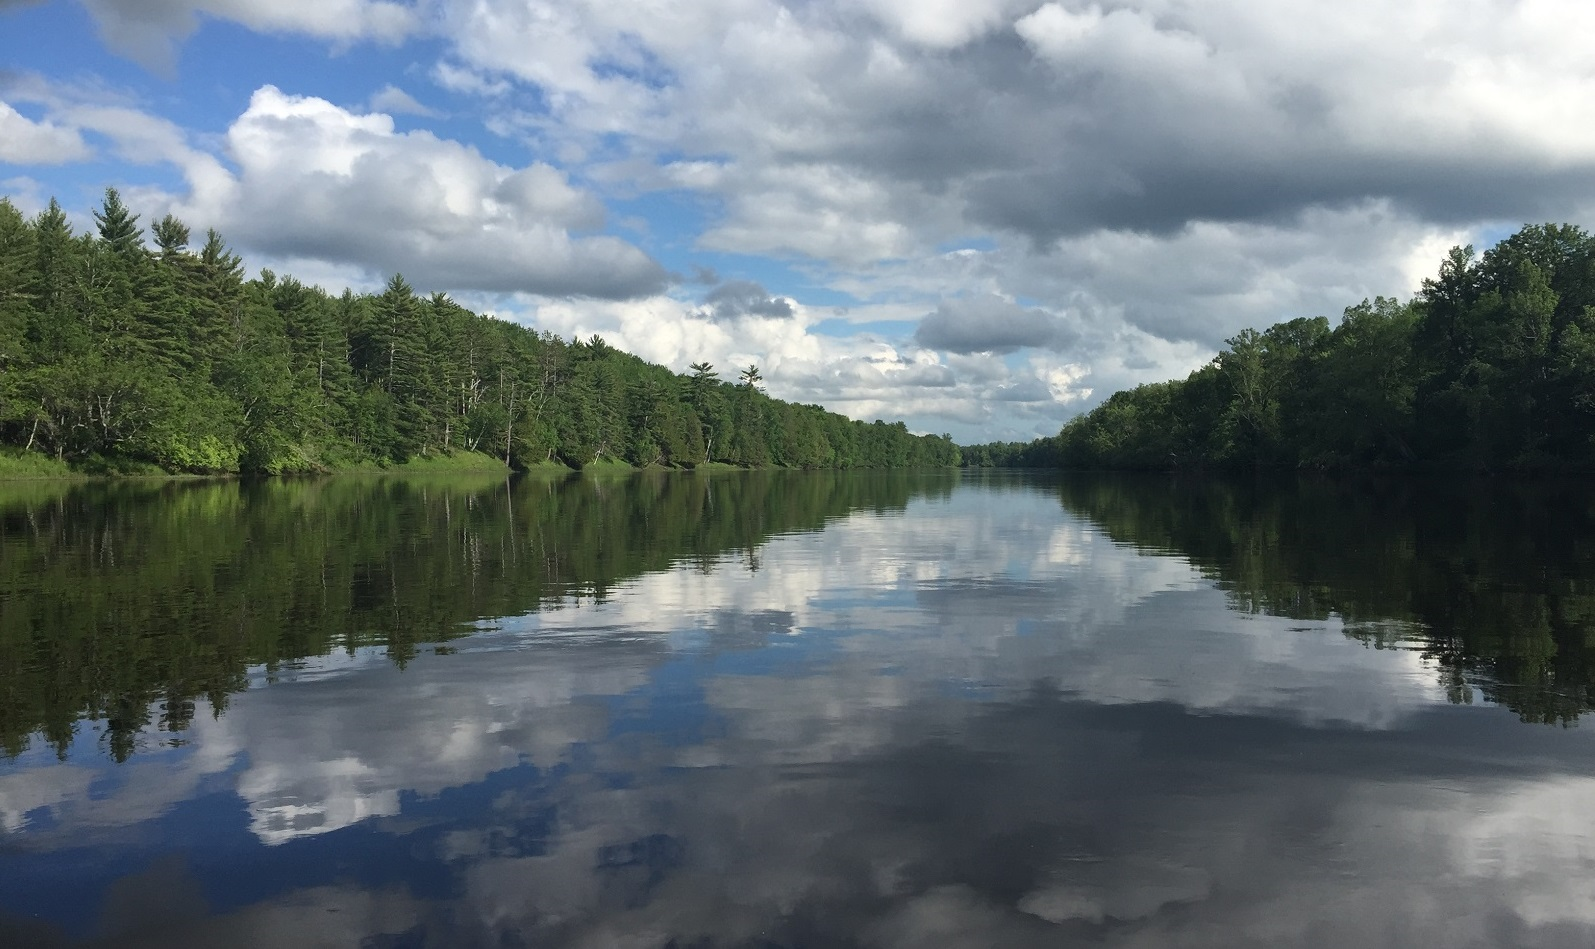 A Fishing Guides Perspective on Mining in the Menominee  American Rivers